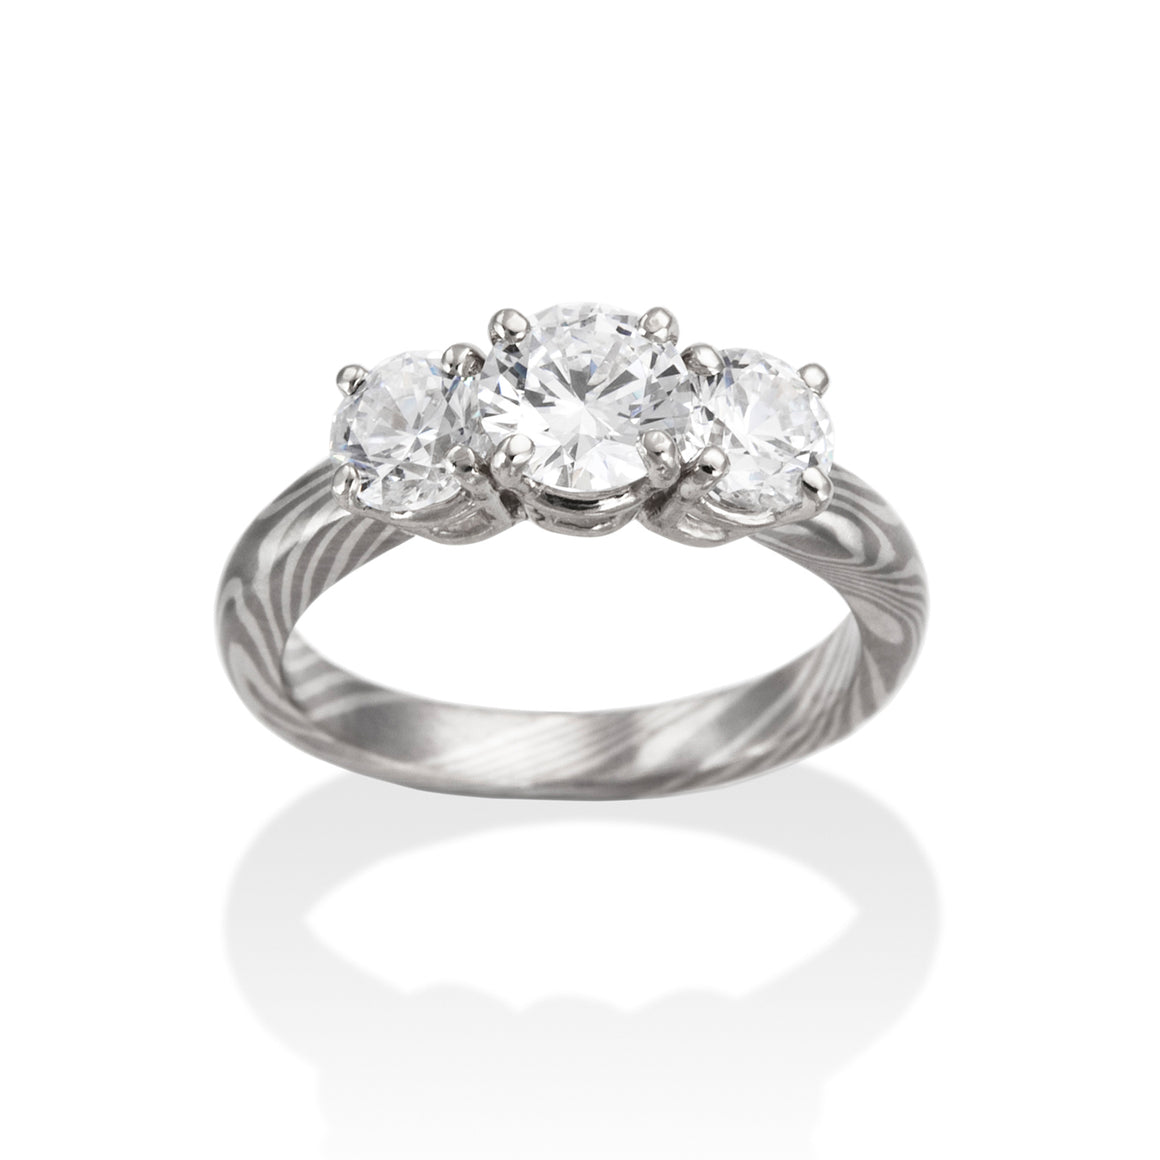 Chris Ploof Madison Engagement Ring